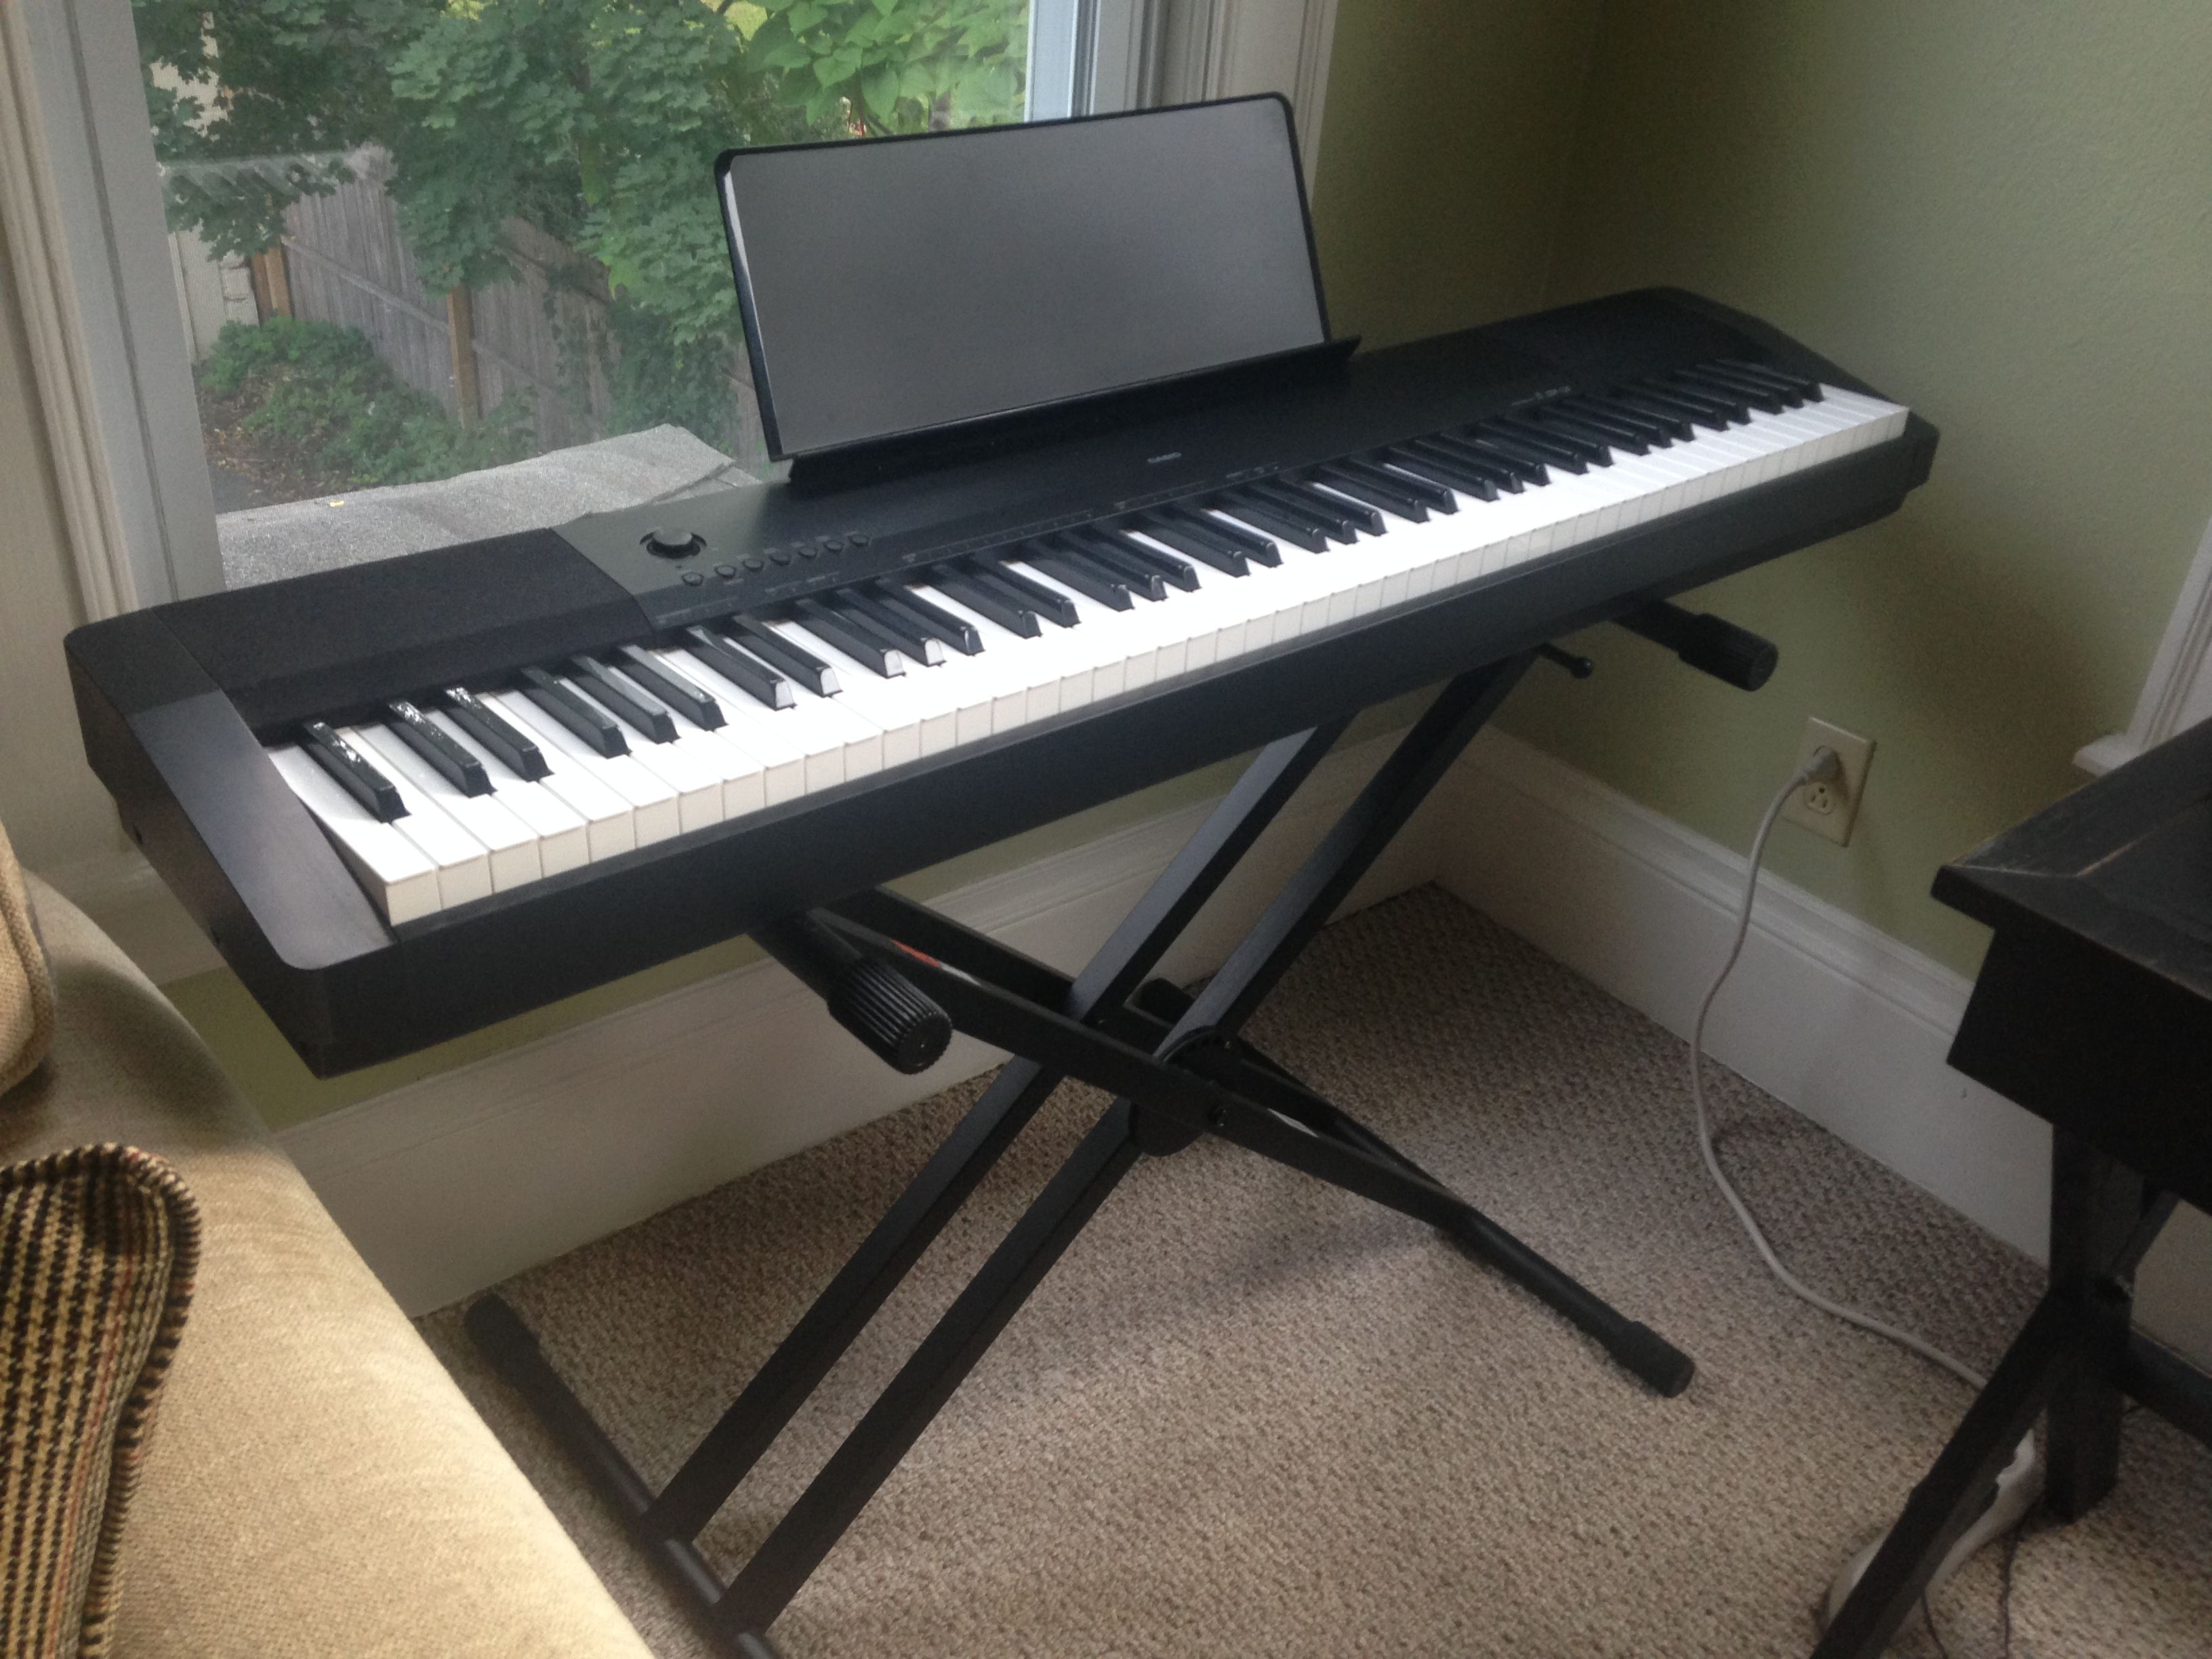 How to Learn to Play an Electric Piano Keyboard | Our Pastimes